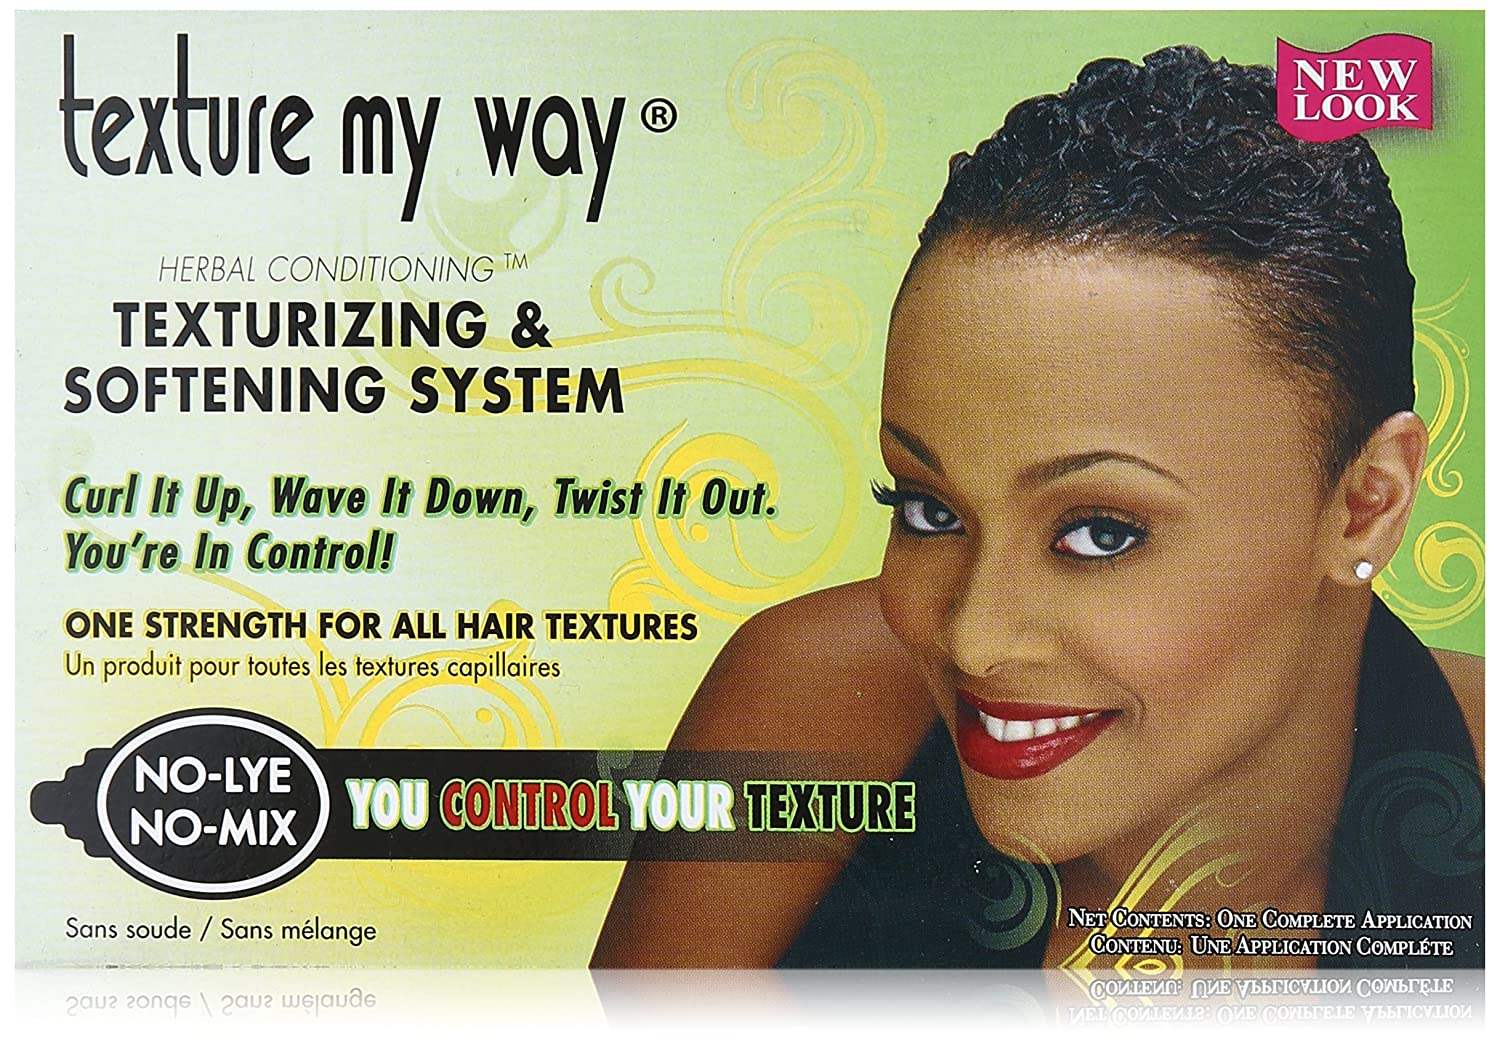 Texture My Way Herbal Conditioning Texturizing & Softening System